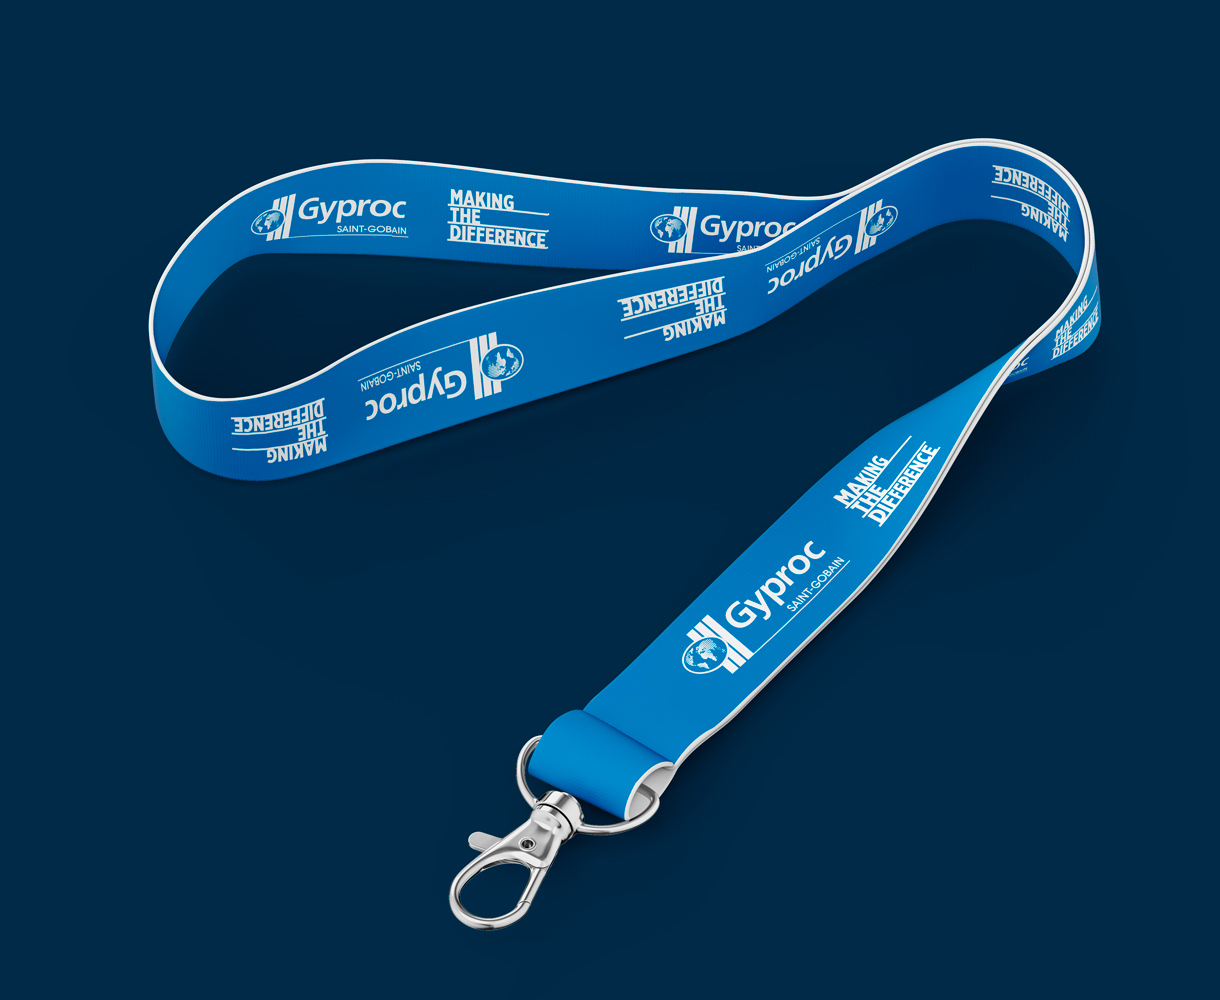 Campaign Design Gyproc Making the Difference lanyard